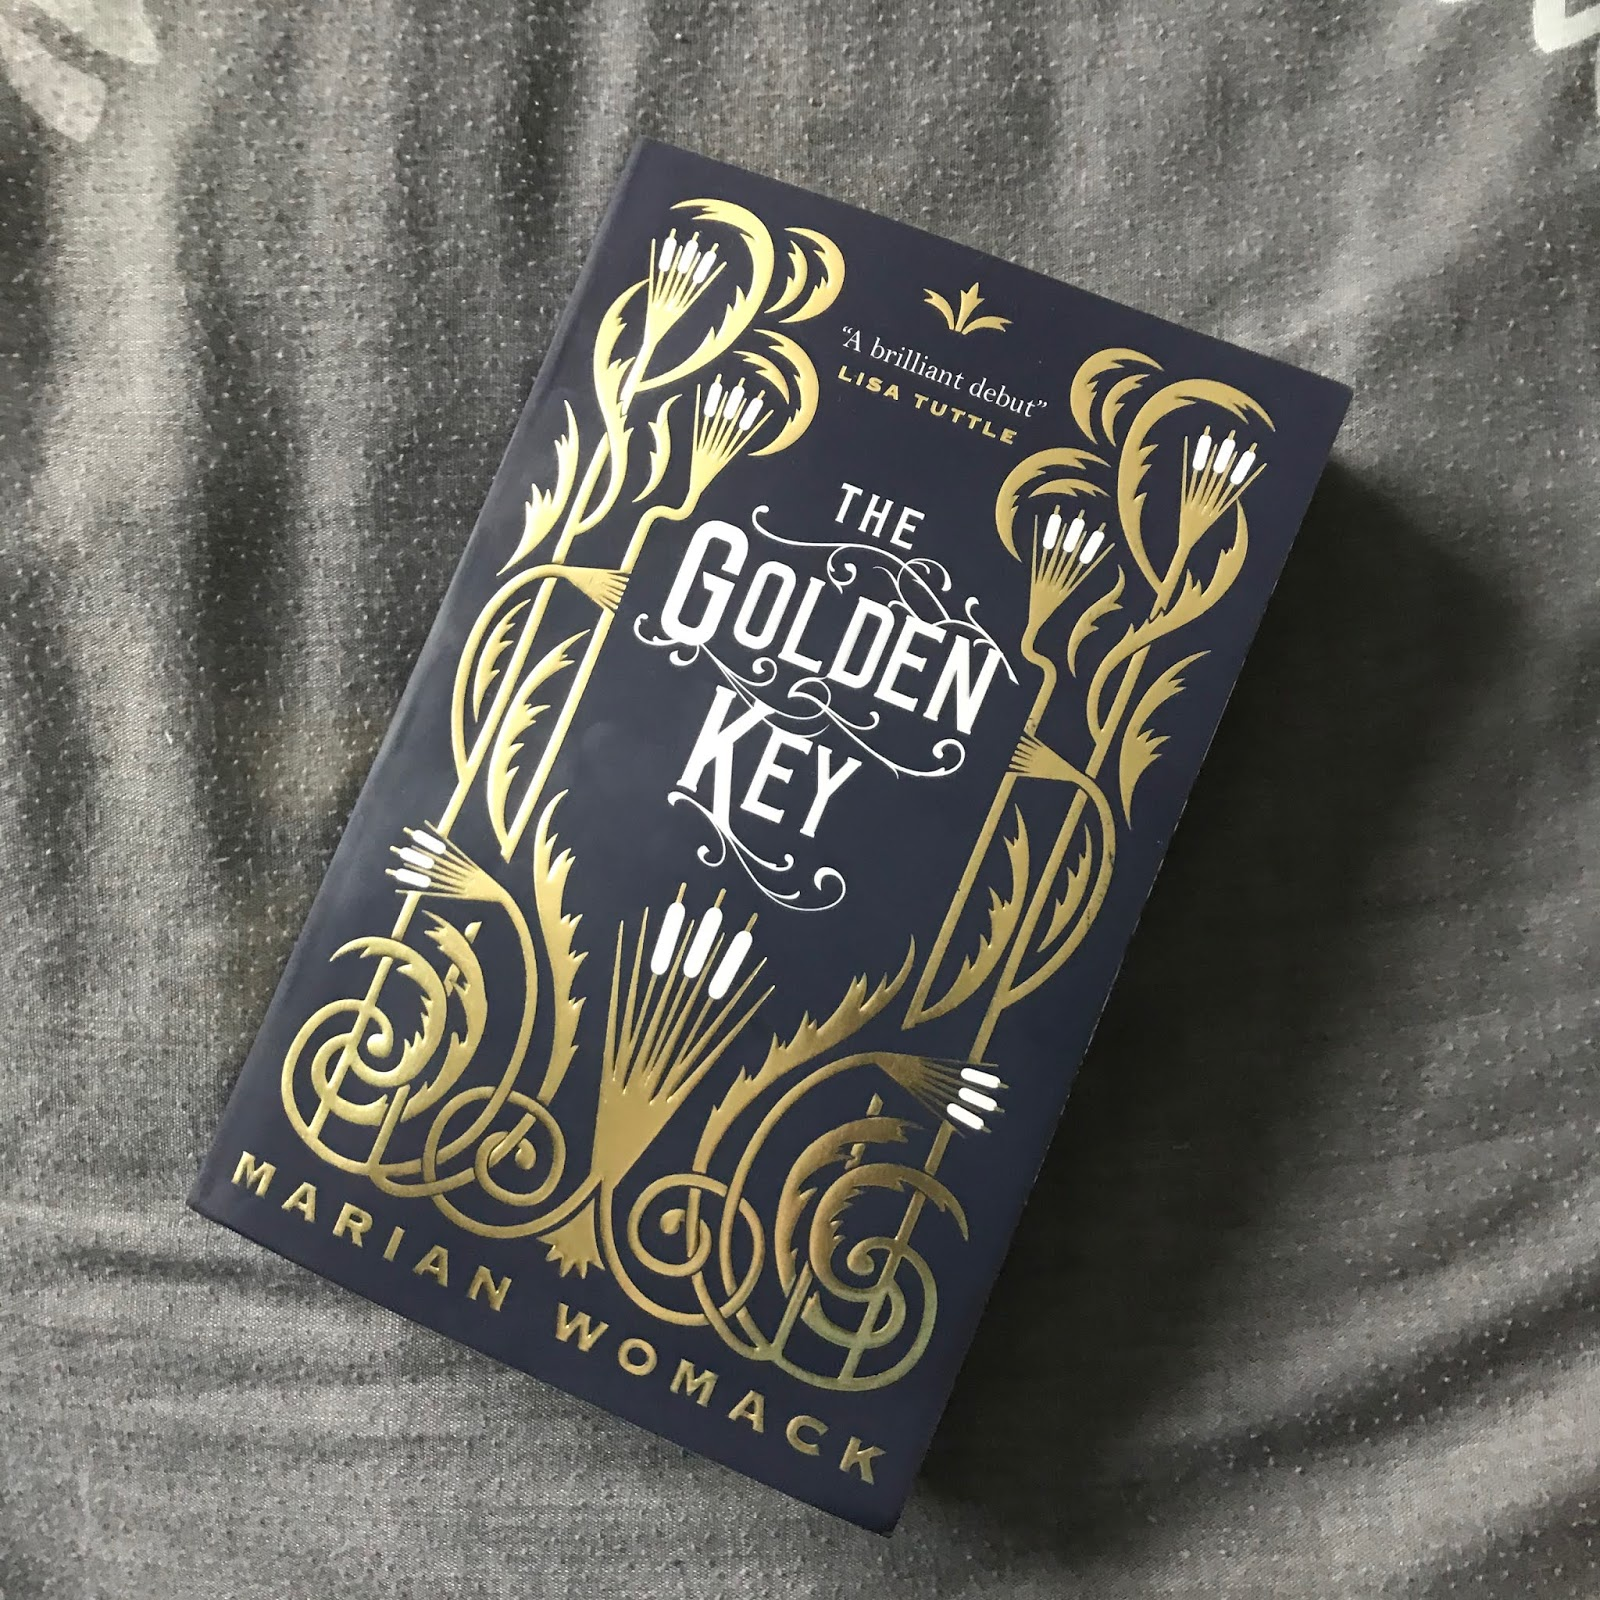 The Golden Key by Marian Womack